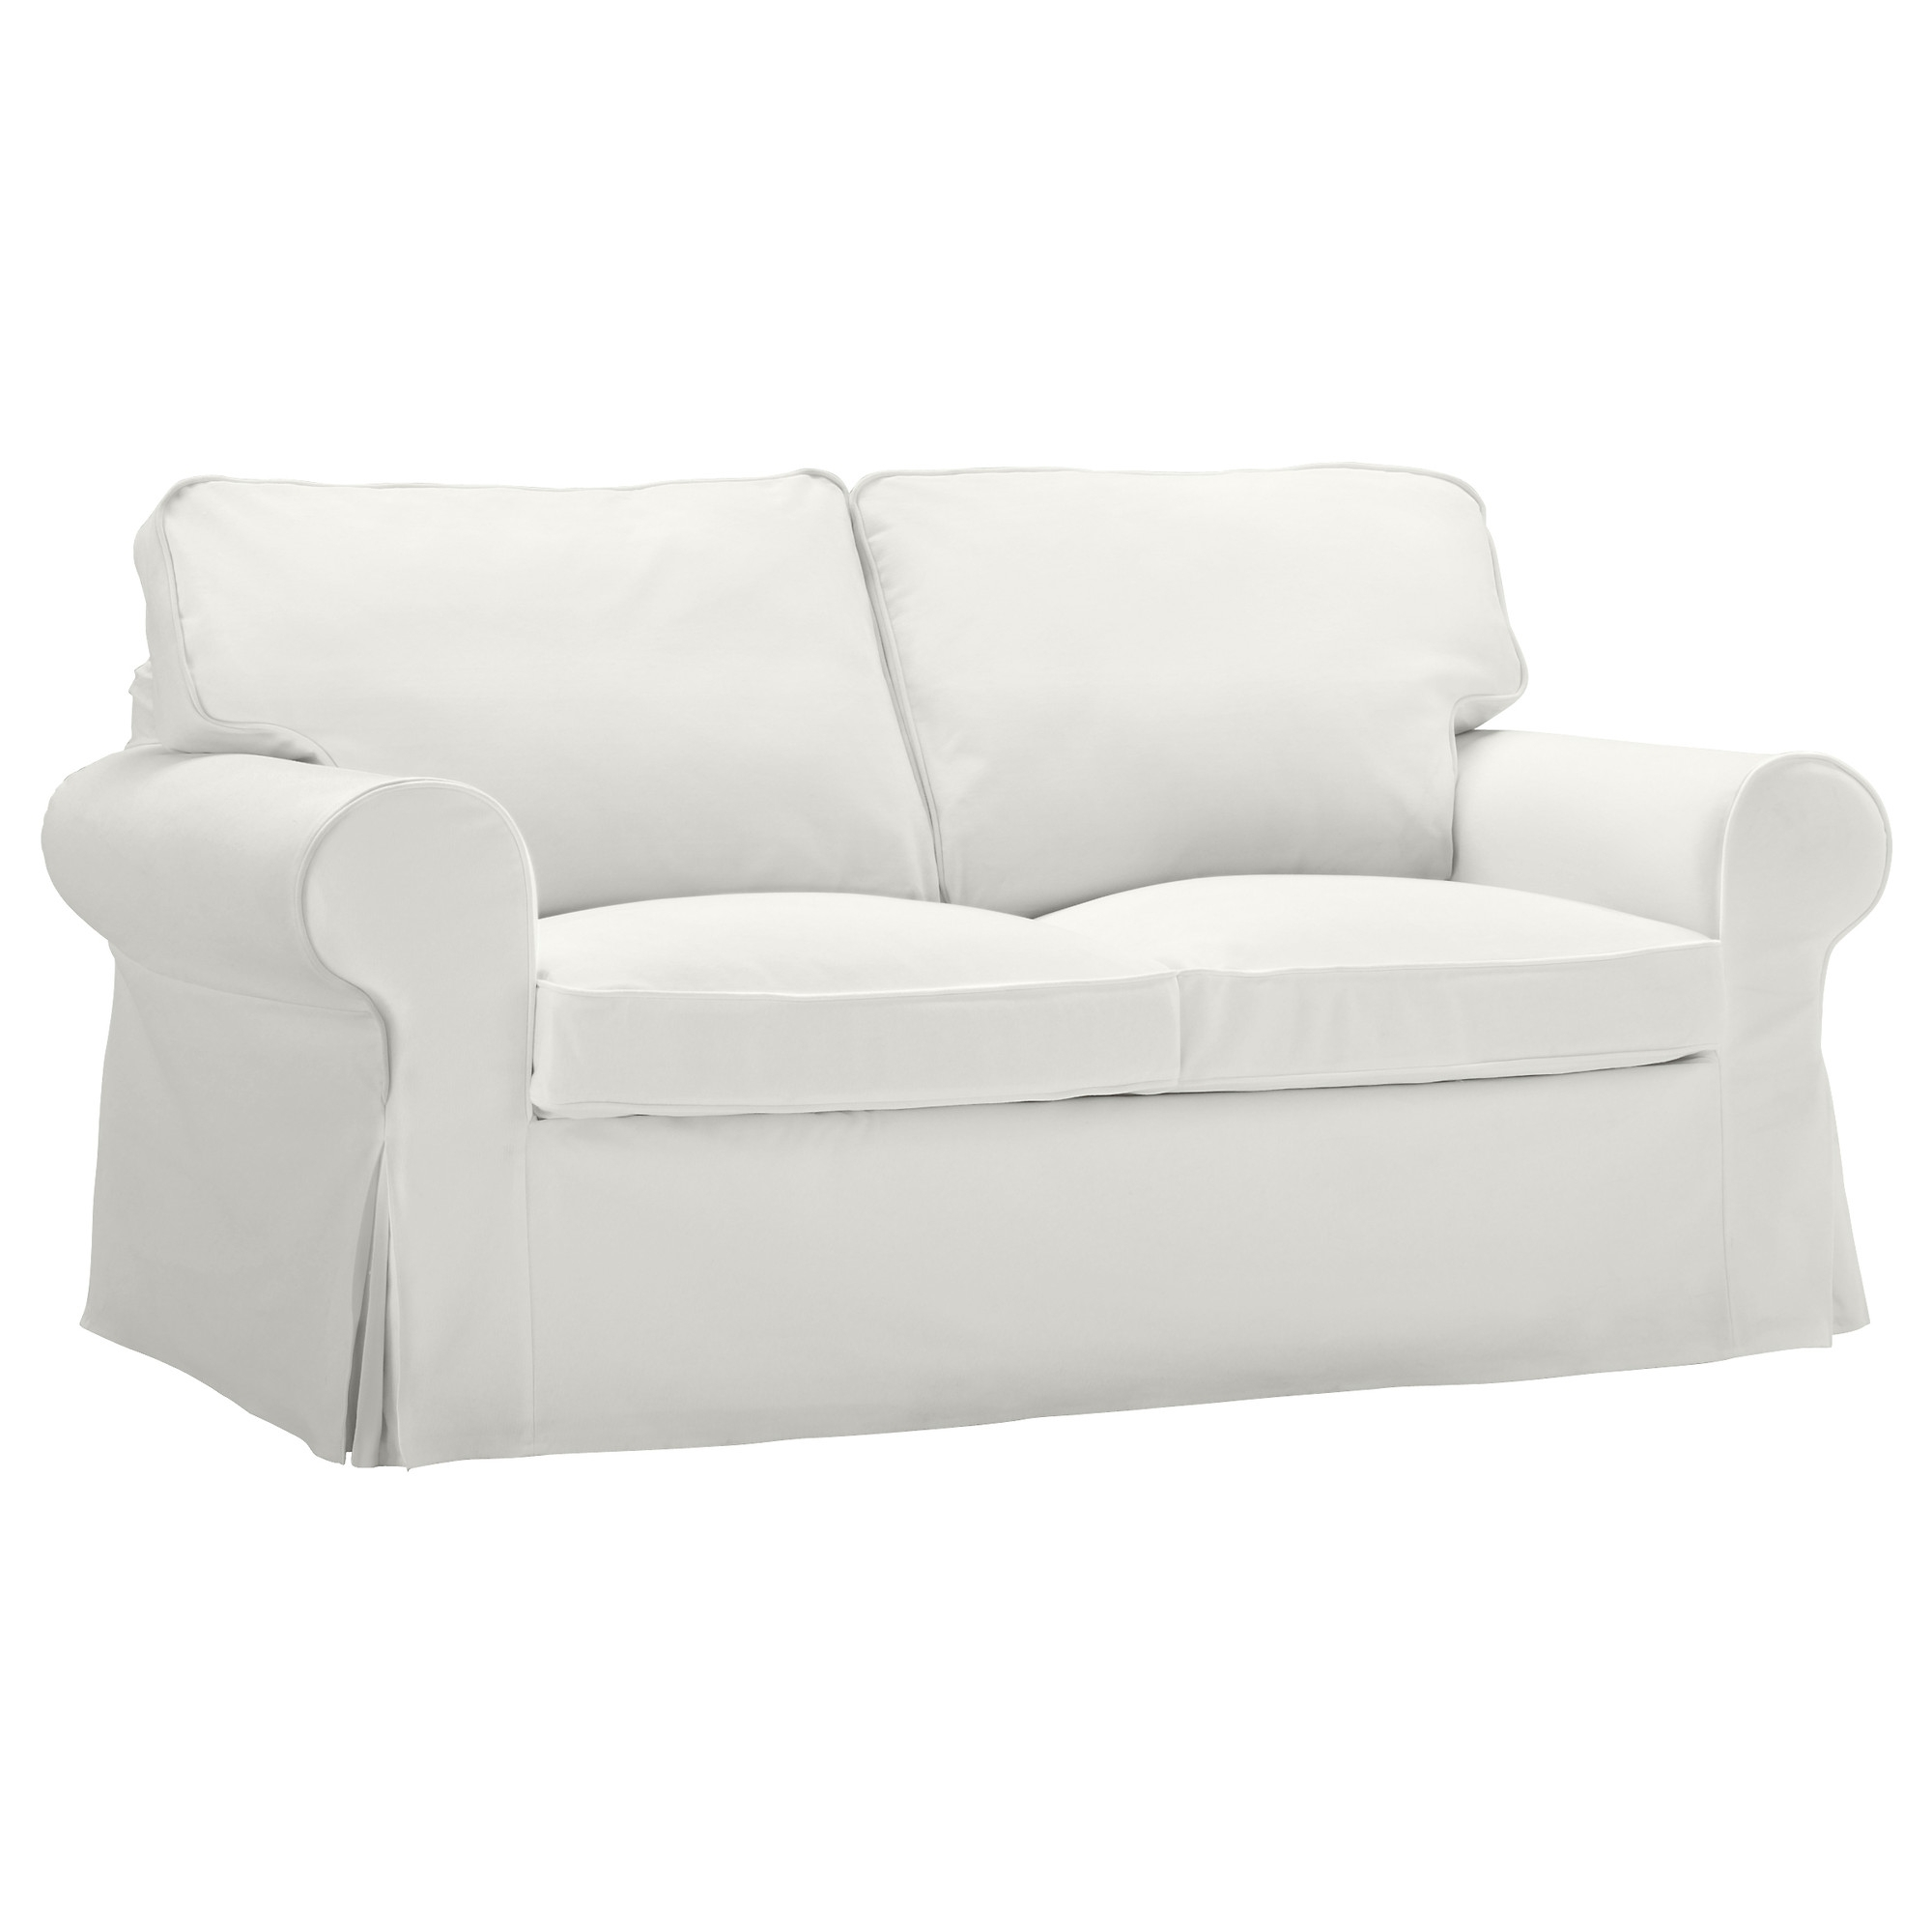 Trendy Ektorp Two Seat Sofa Blekinge White – Ikea With Ikea Small Sofas (View 14 of 15)